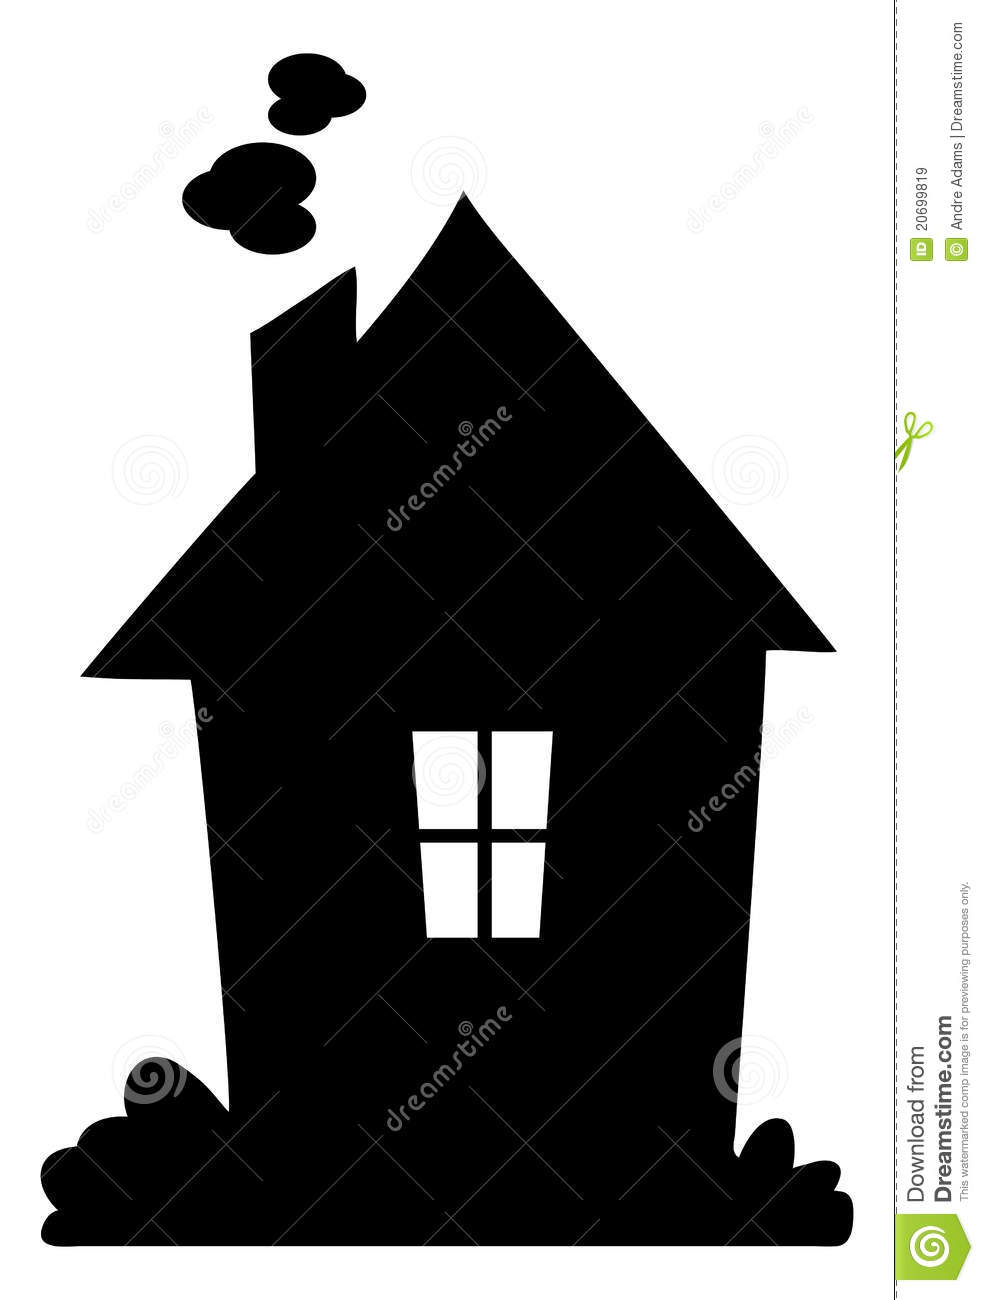 House Silhouette Royalty Free Stock Images.